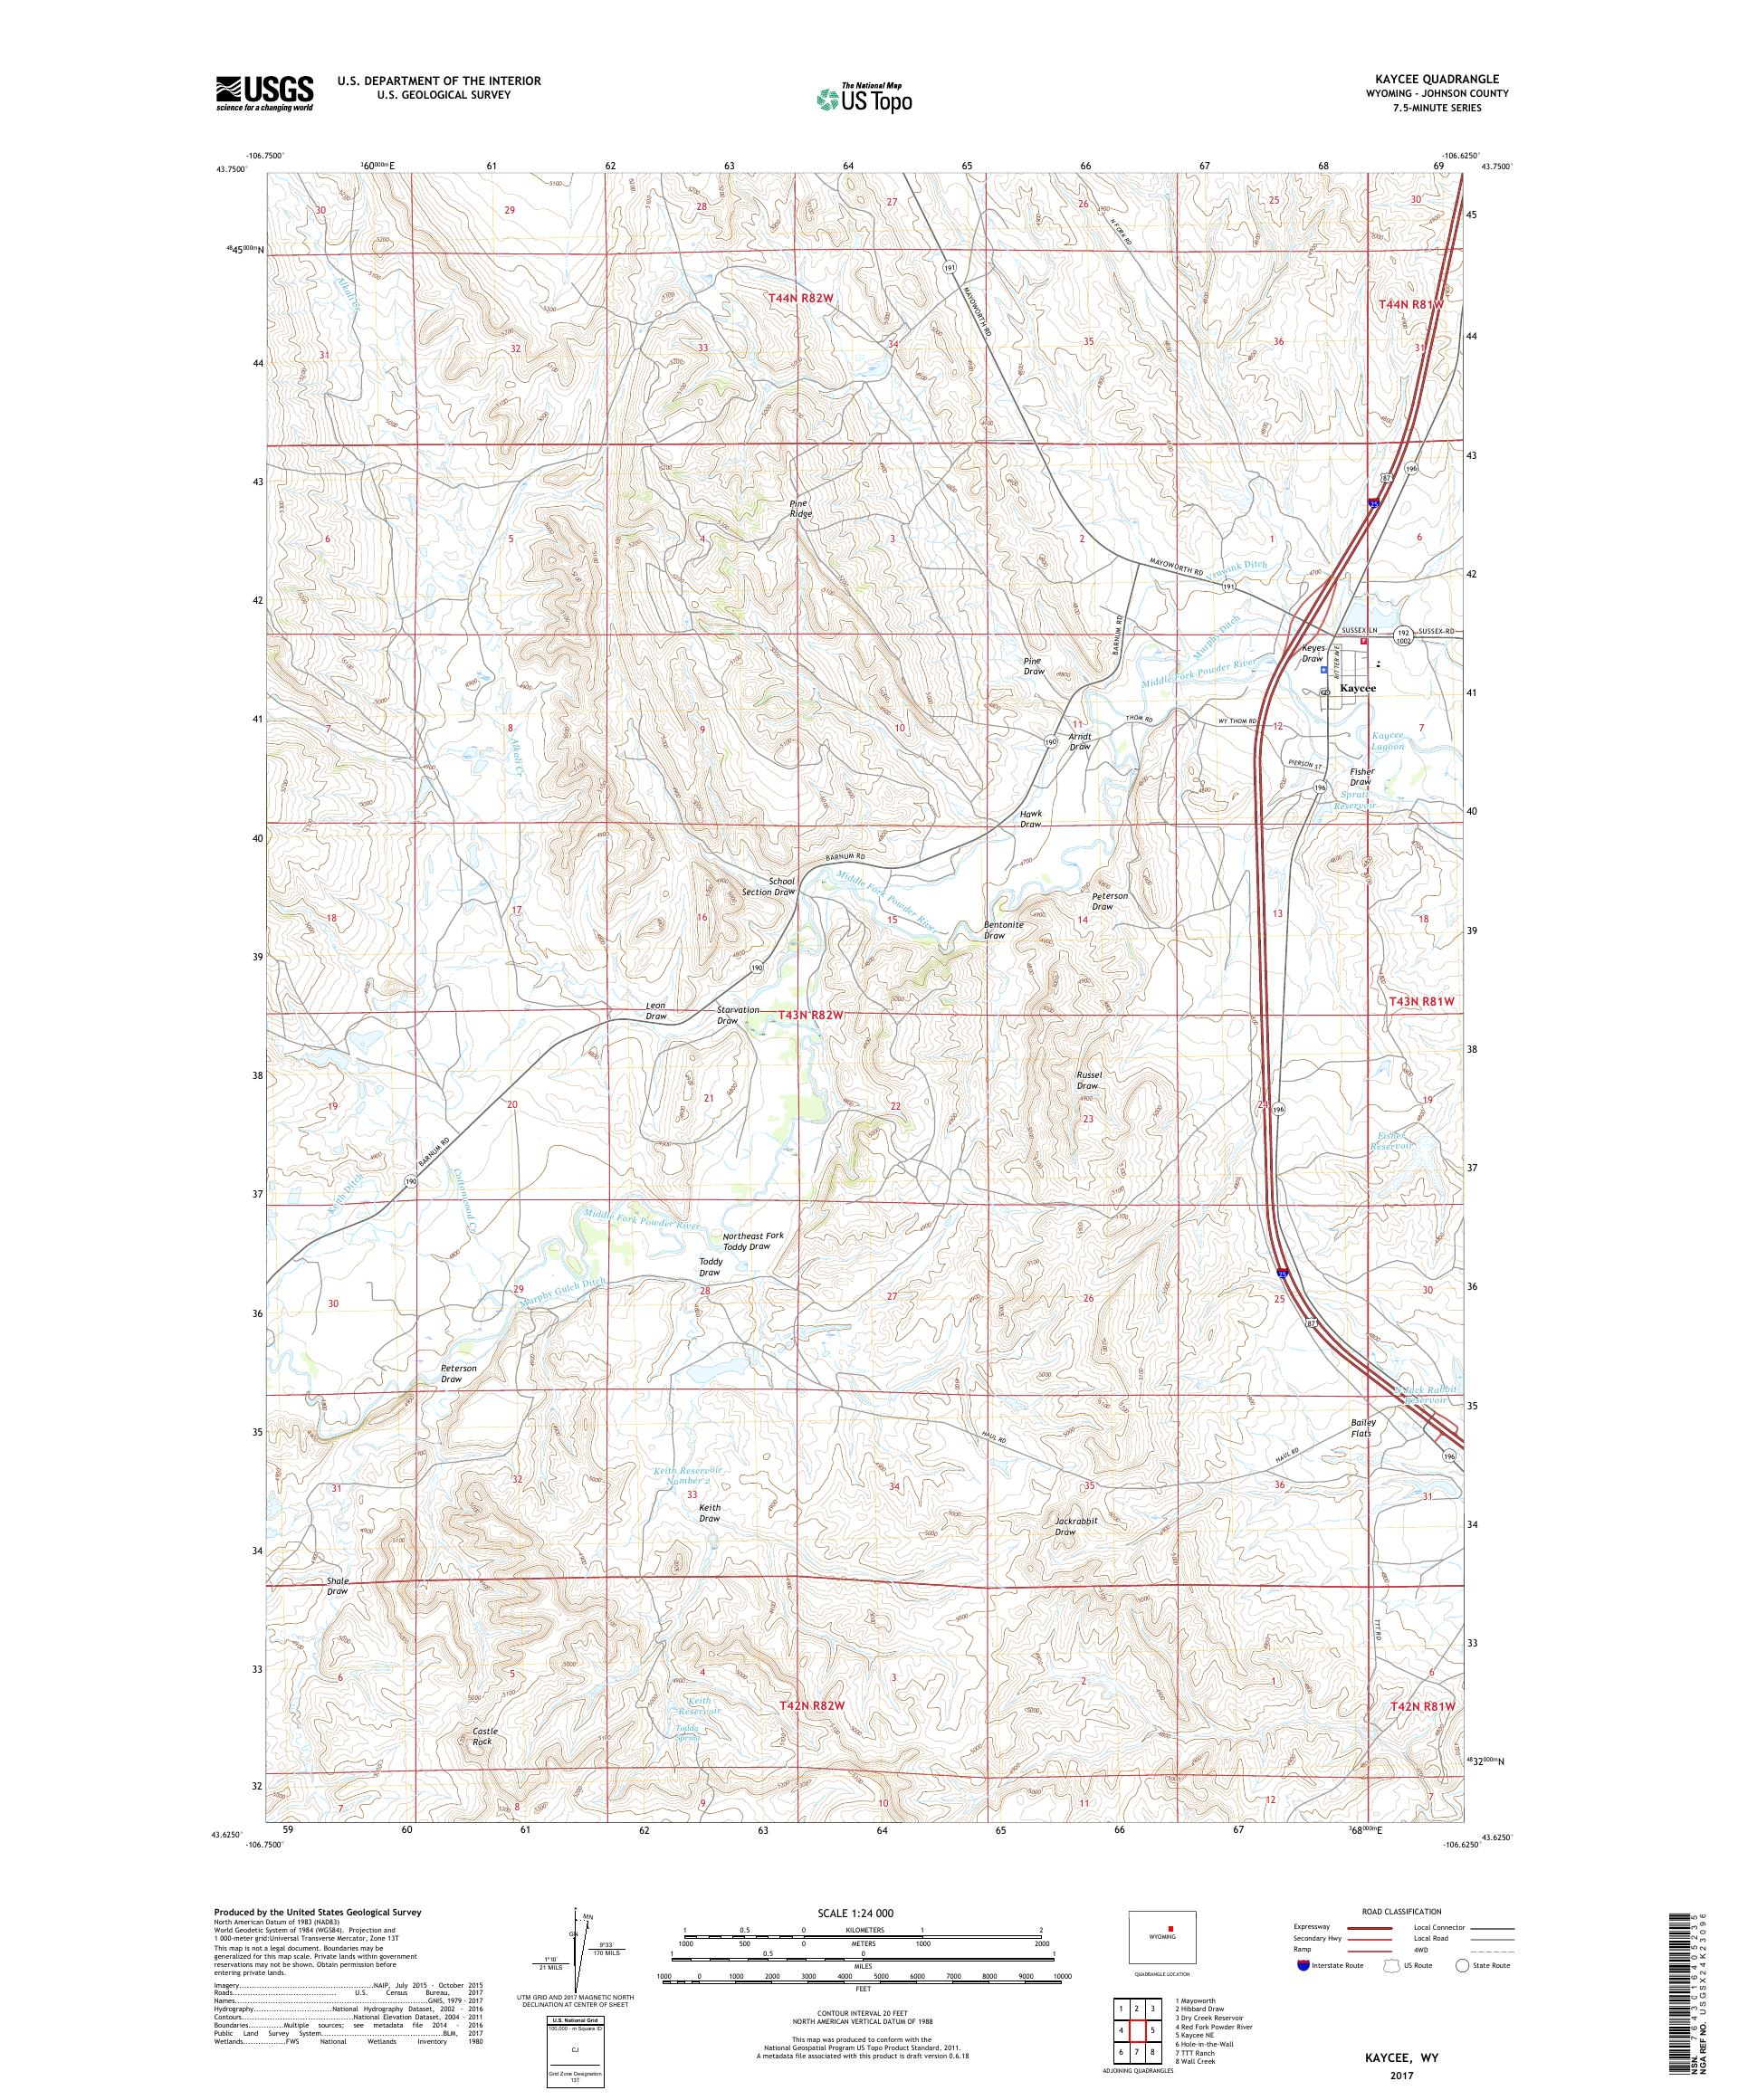 MyTopo Kaycee, Wyoming USGS Quad Topo Map on rock springs wyoming on us map, laramie wyoming on us map, cheyenne wyoming on us map, green river wyoming on us map,